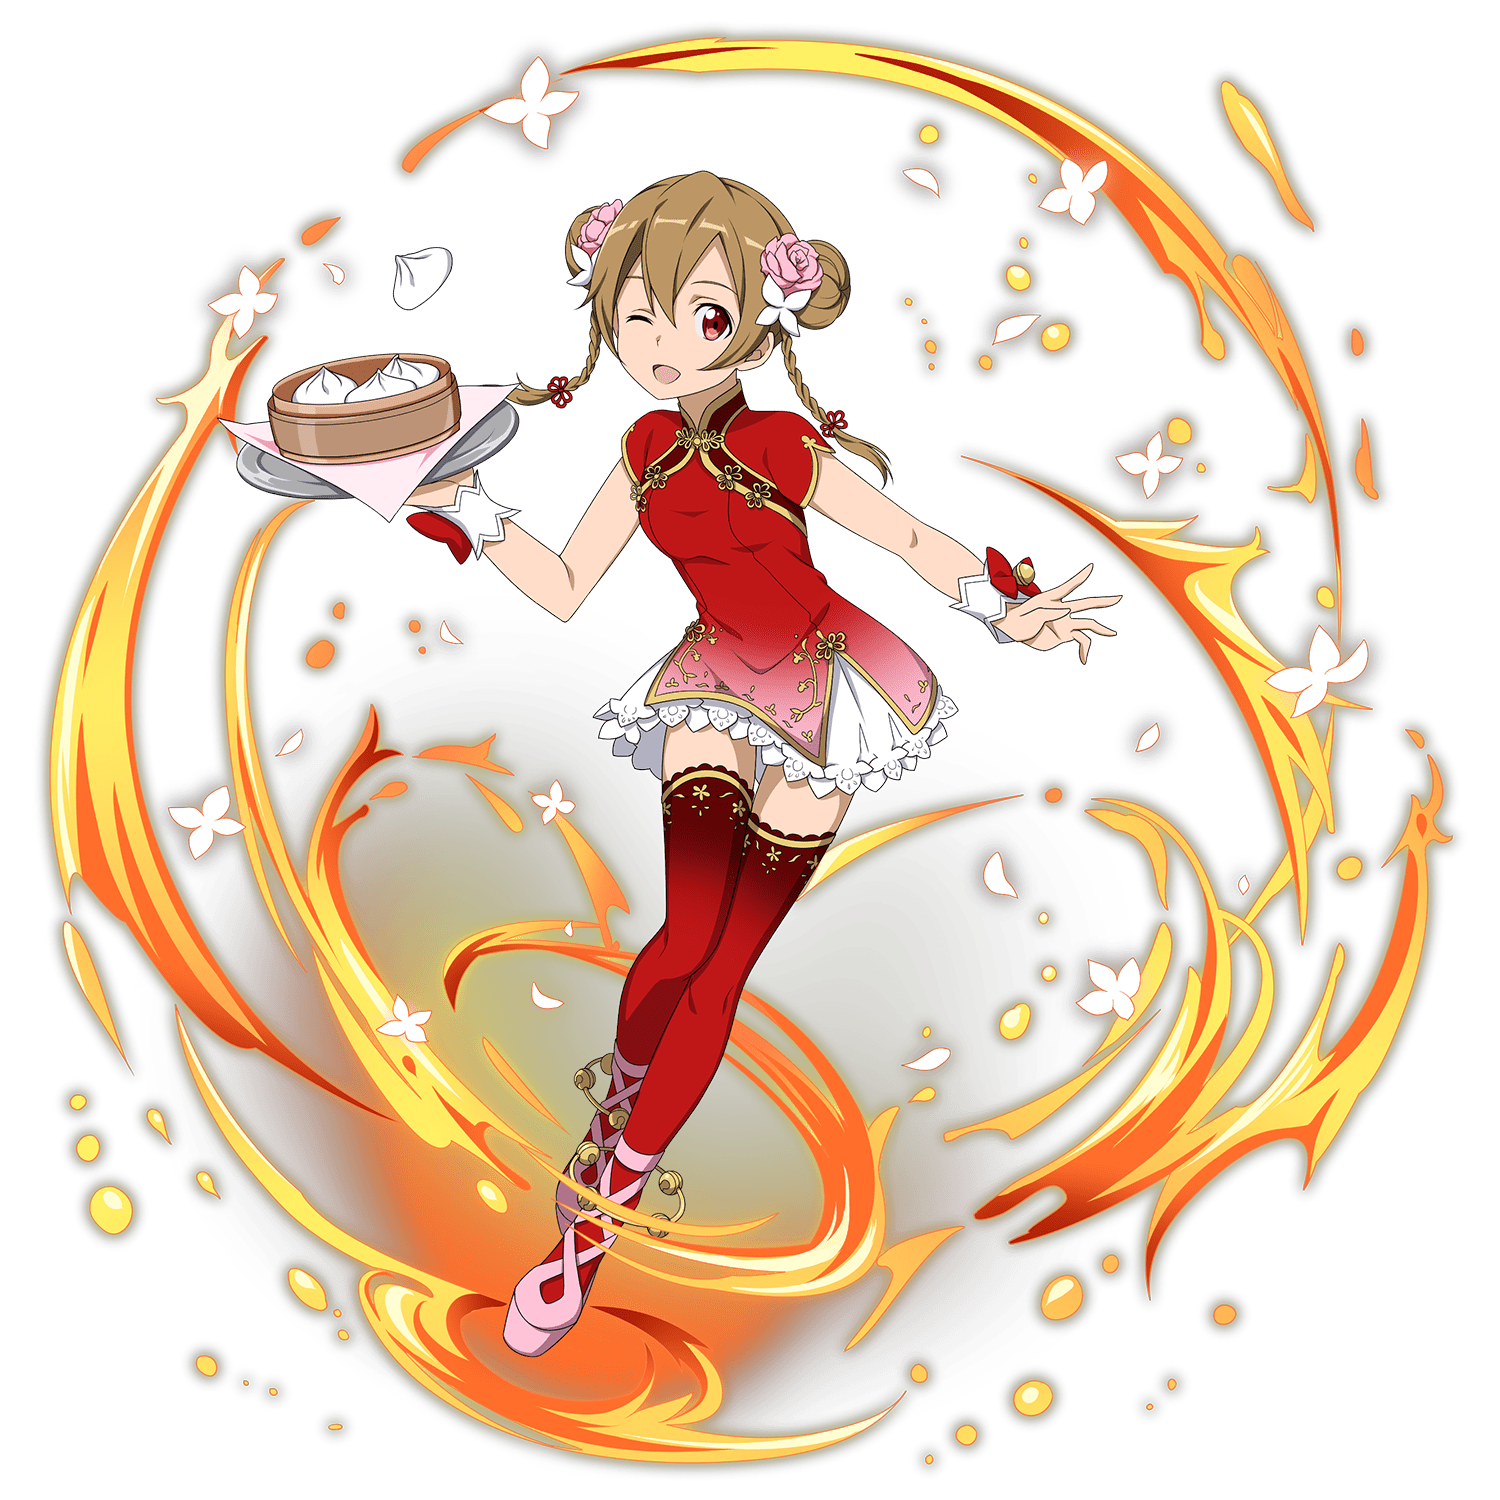 Girl in dress silica. Games clipart chinese garter